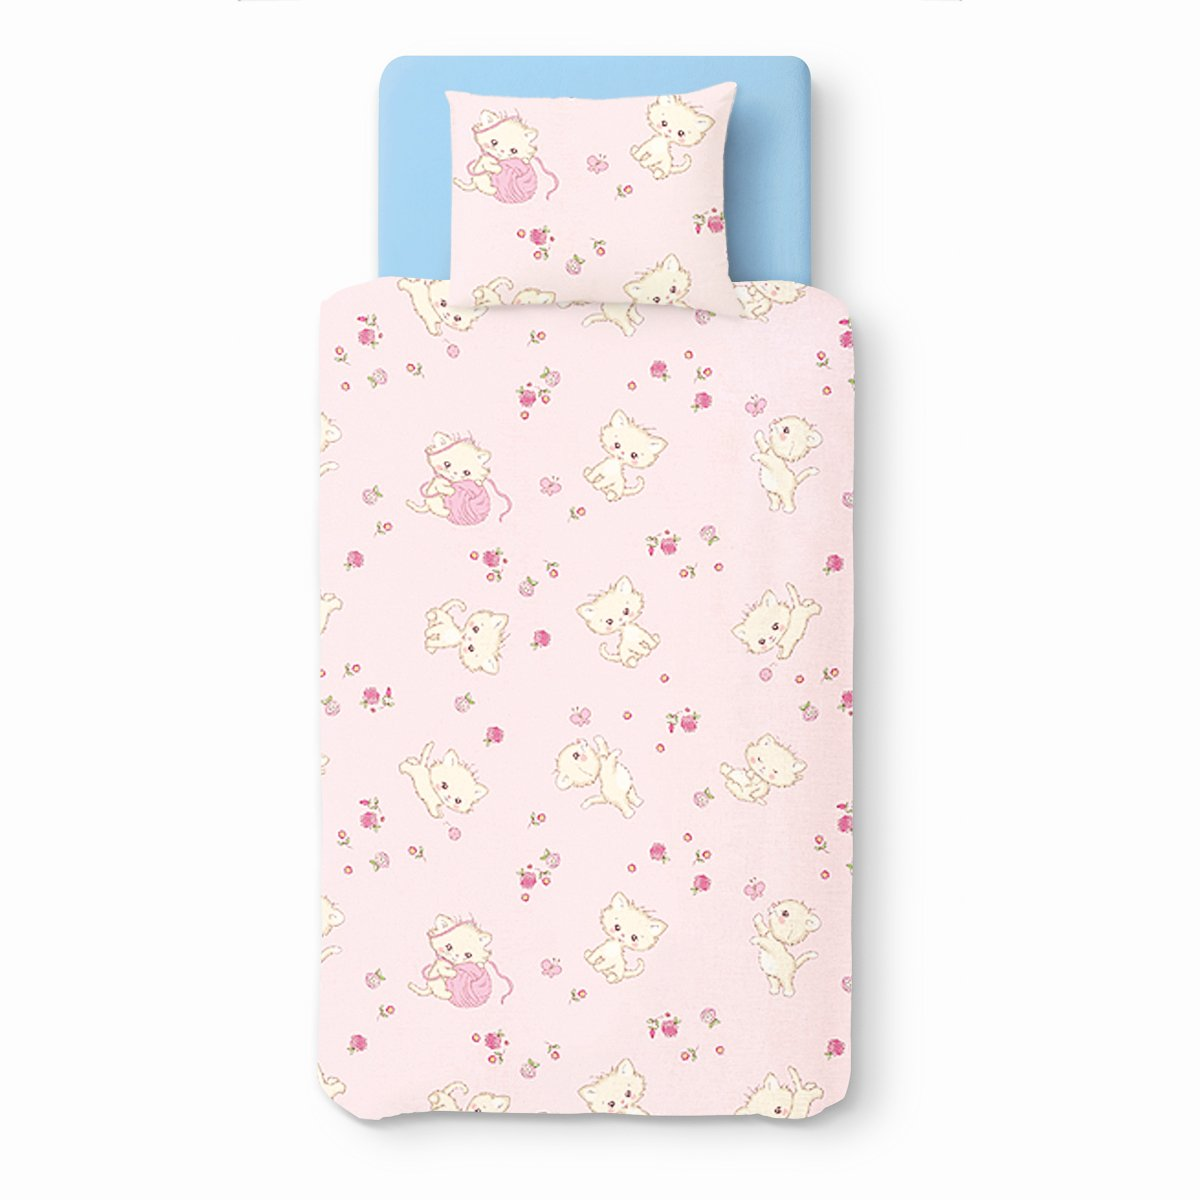 Baby Pink Kittens – SoulBedroom 100% Cotton Bed Set (Duvet Cover 39''x 55'' & Pillow Case 15''x 23'')